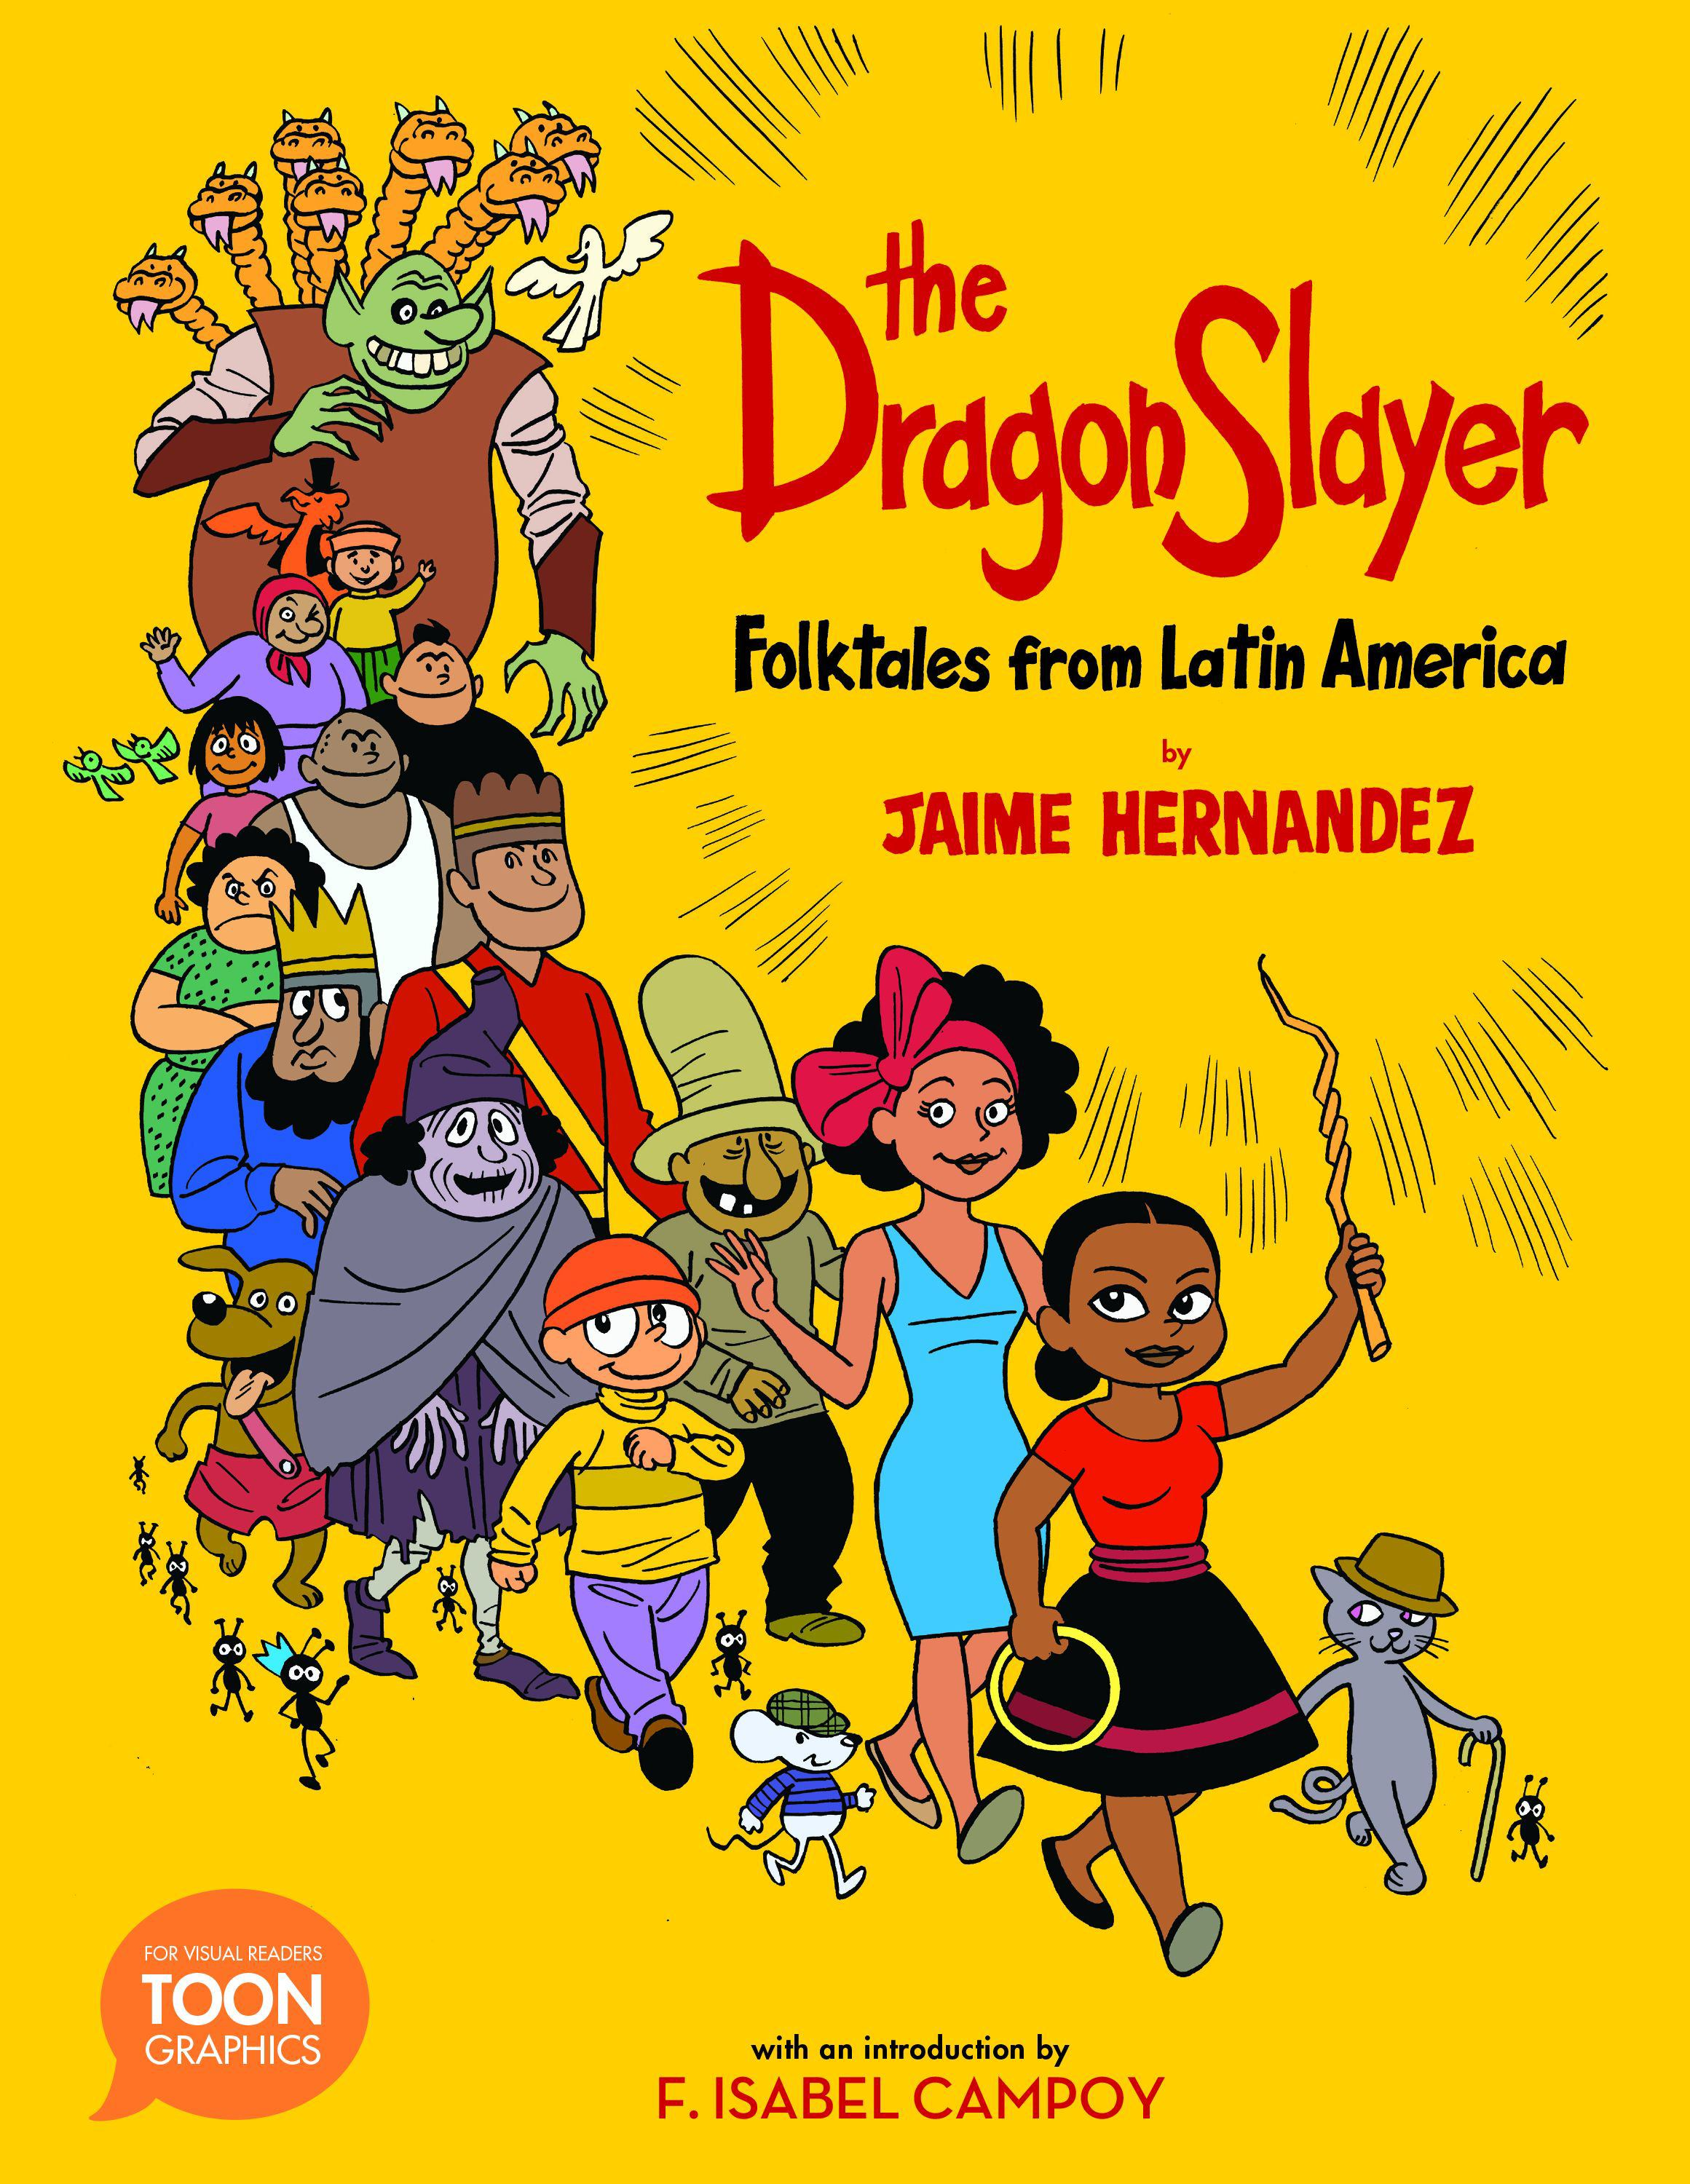 book cover image: The Dragon Slayer: Folktales from Latin America